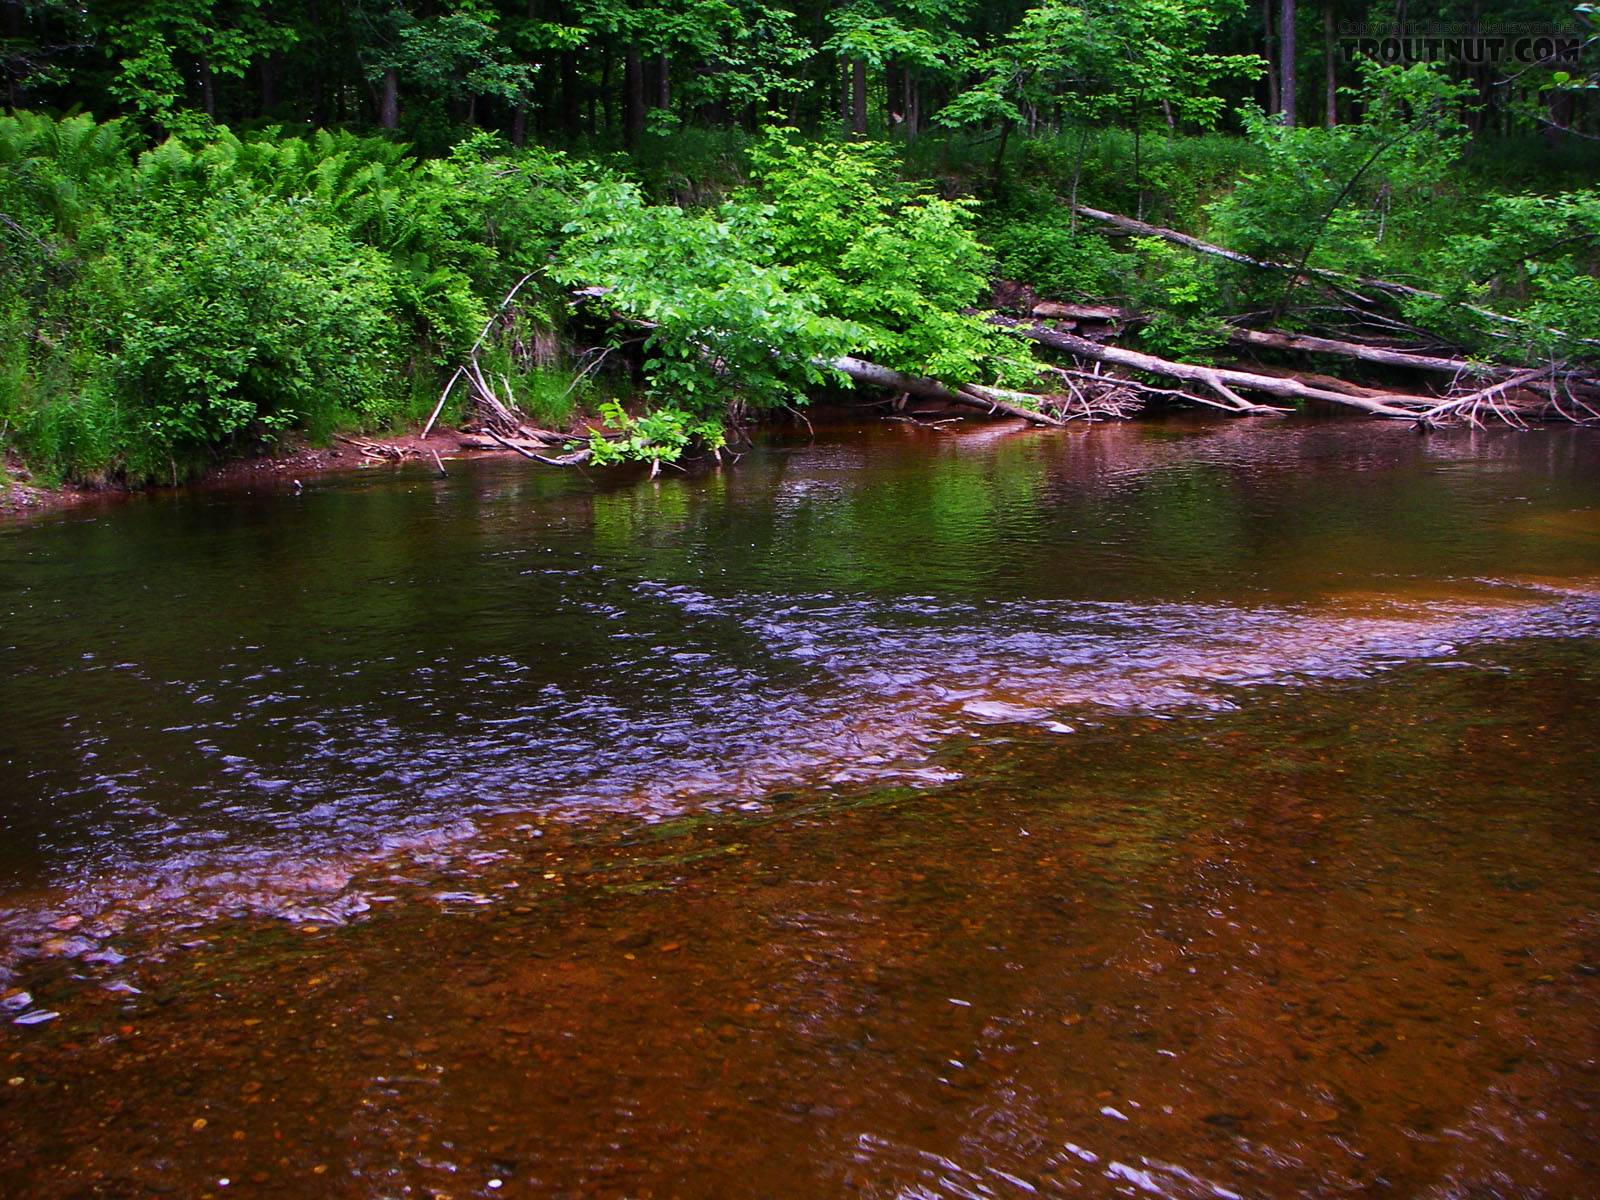 This is one of my favorite small-stream pools because it's so fishable.  The little stream holds brookies, browns, and rainbows in equal number, never spectacular, but there's always a little something. From the Marengo River above Four Corners Store Road in Wisconsin.